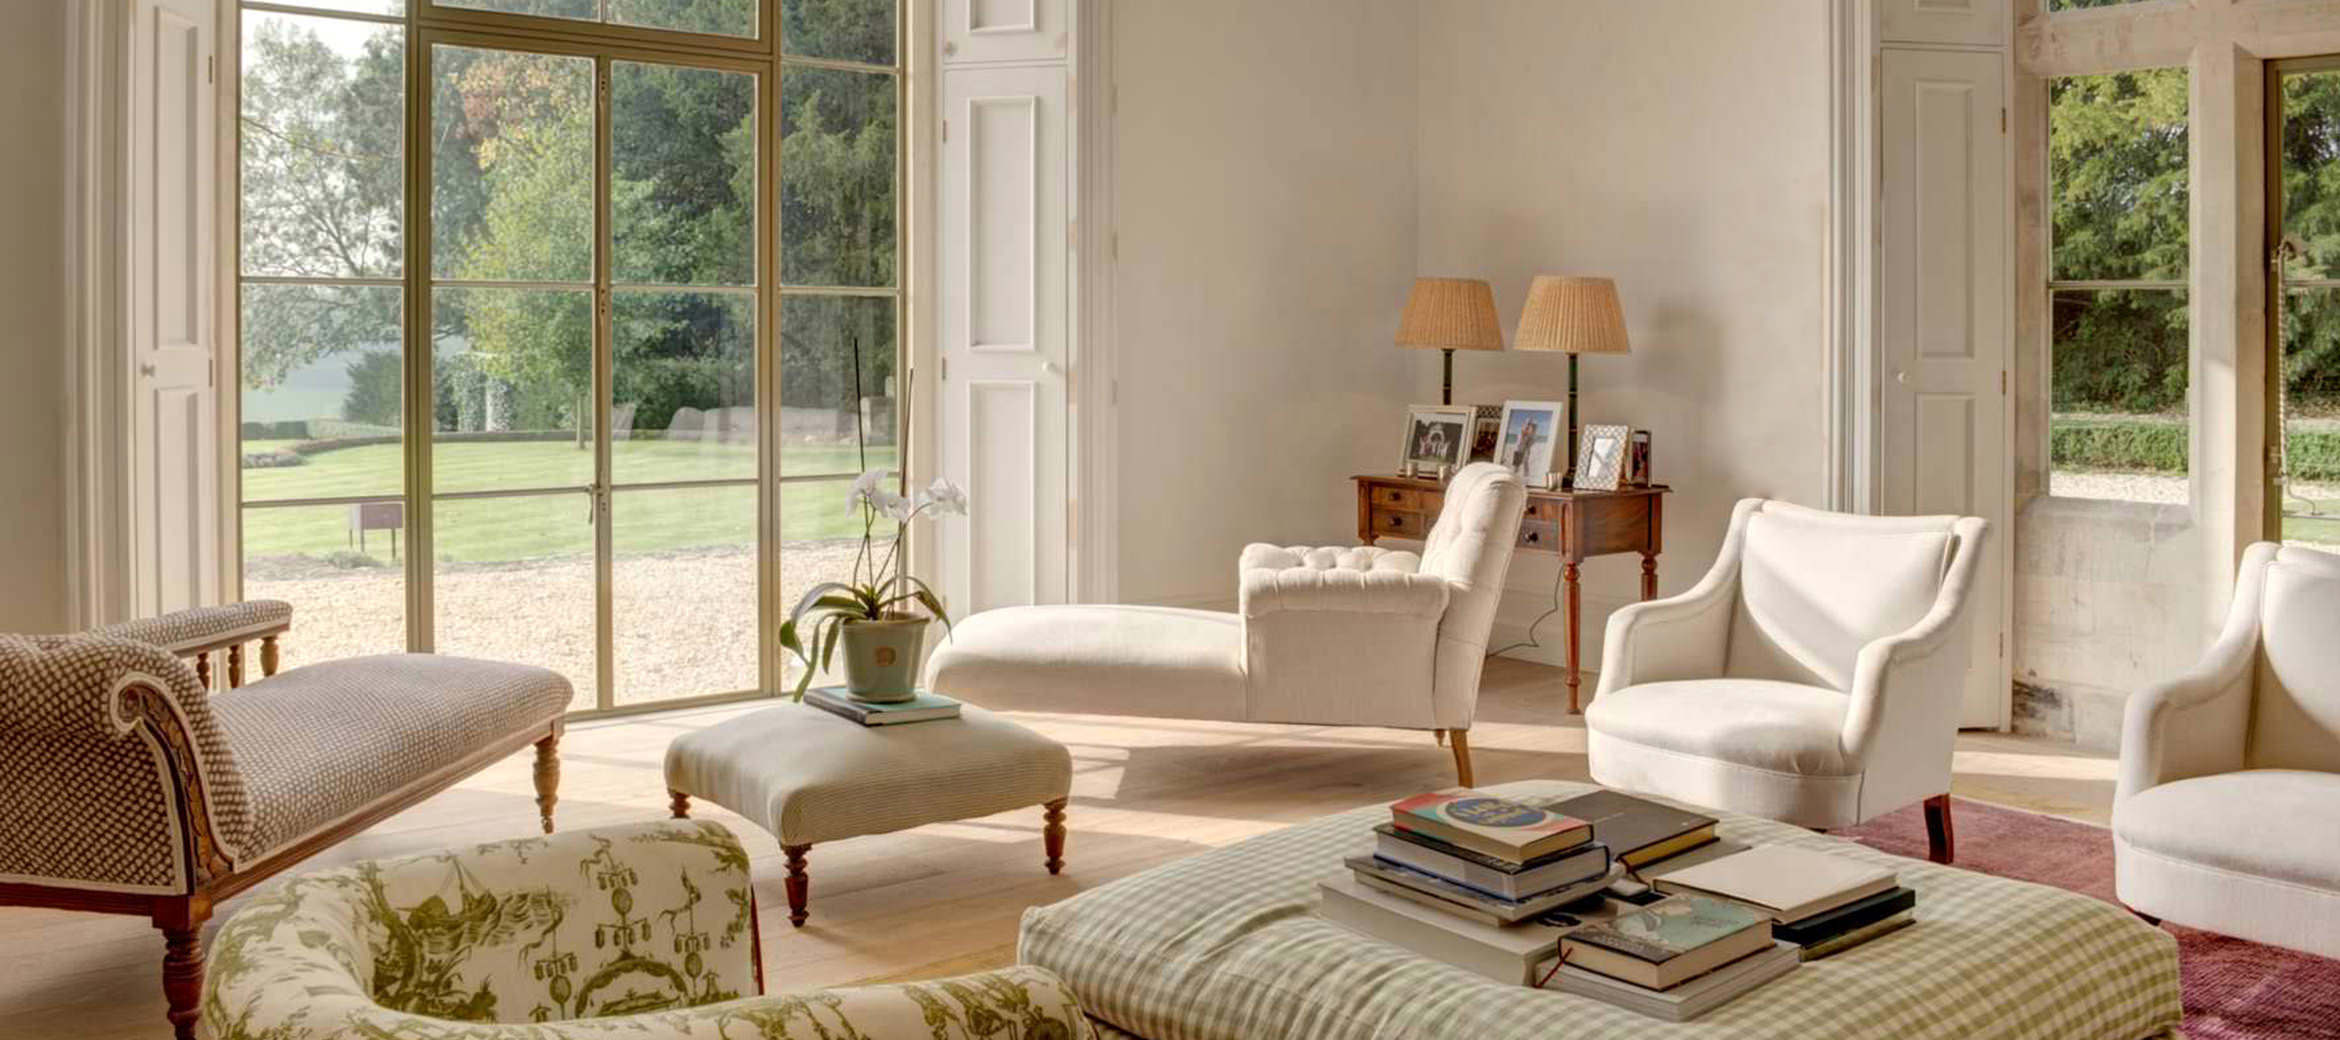 luxury-cotswold-august-house-1048-lcr-rev